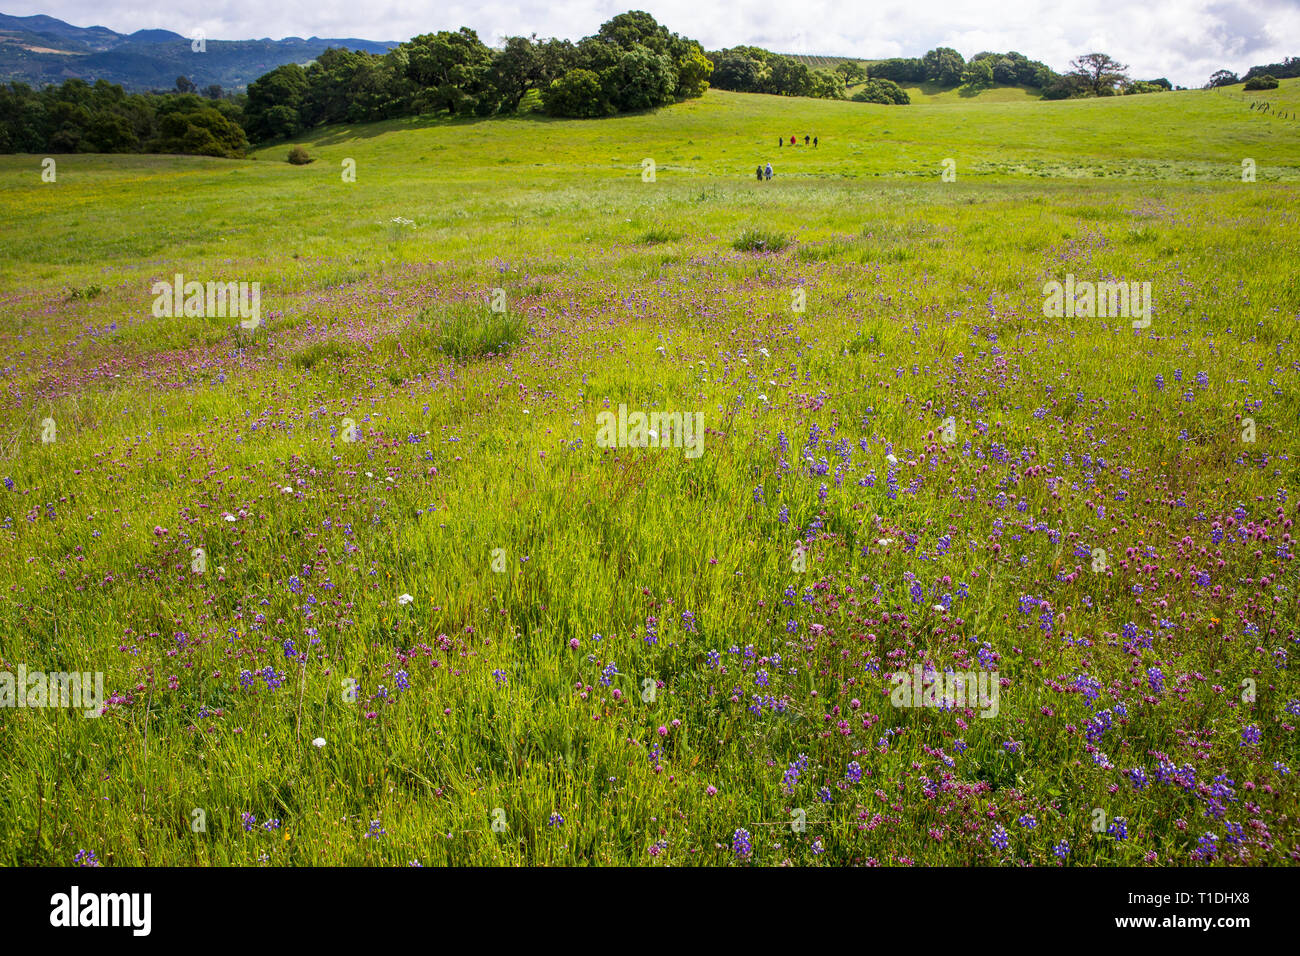 Field of Douglas' Lupine, Red Owl's Clover, and other wildflowers during a superbloom and people walking in the distance, Sonoma, California - Stock Image